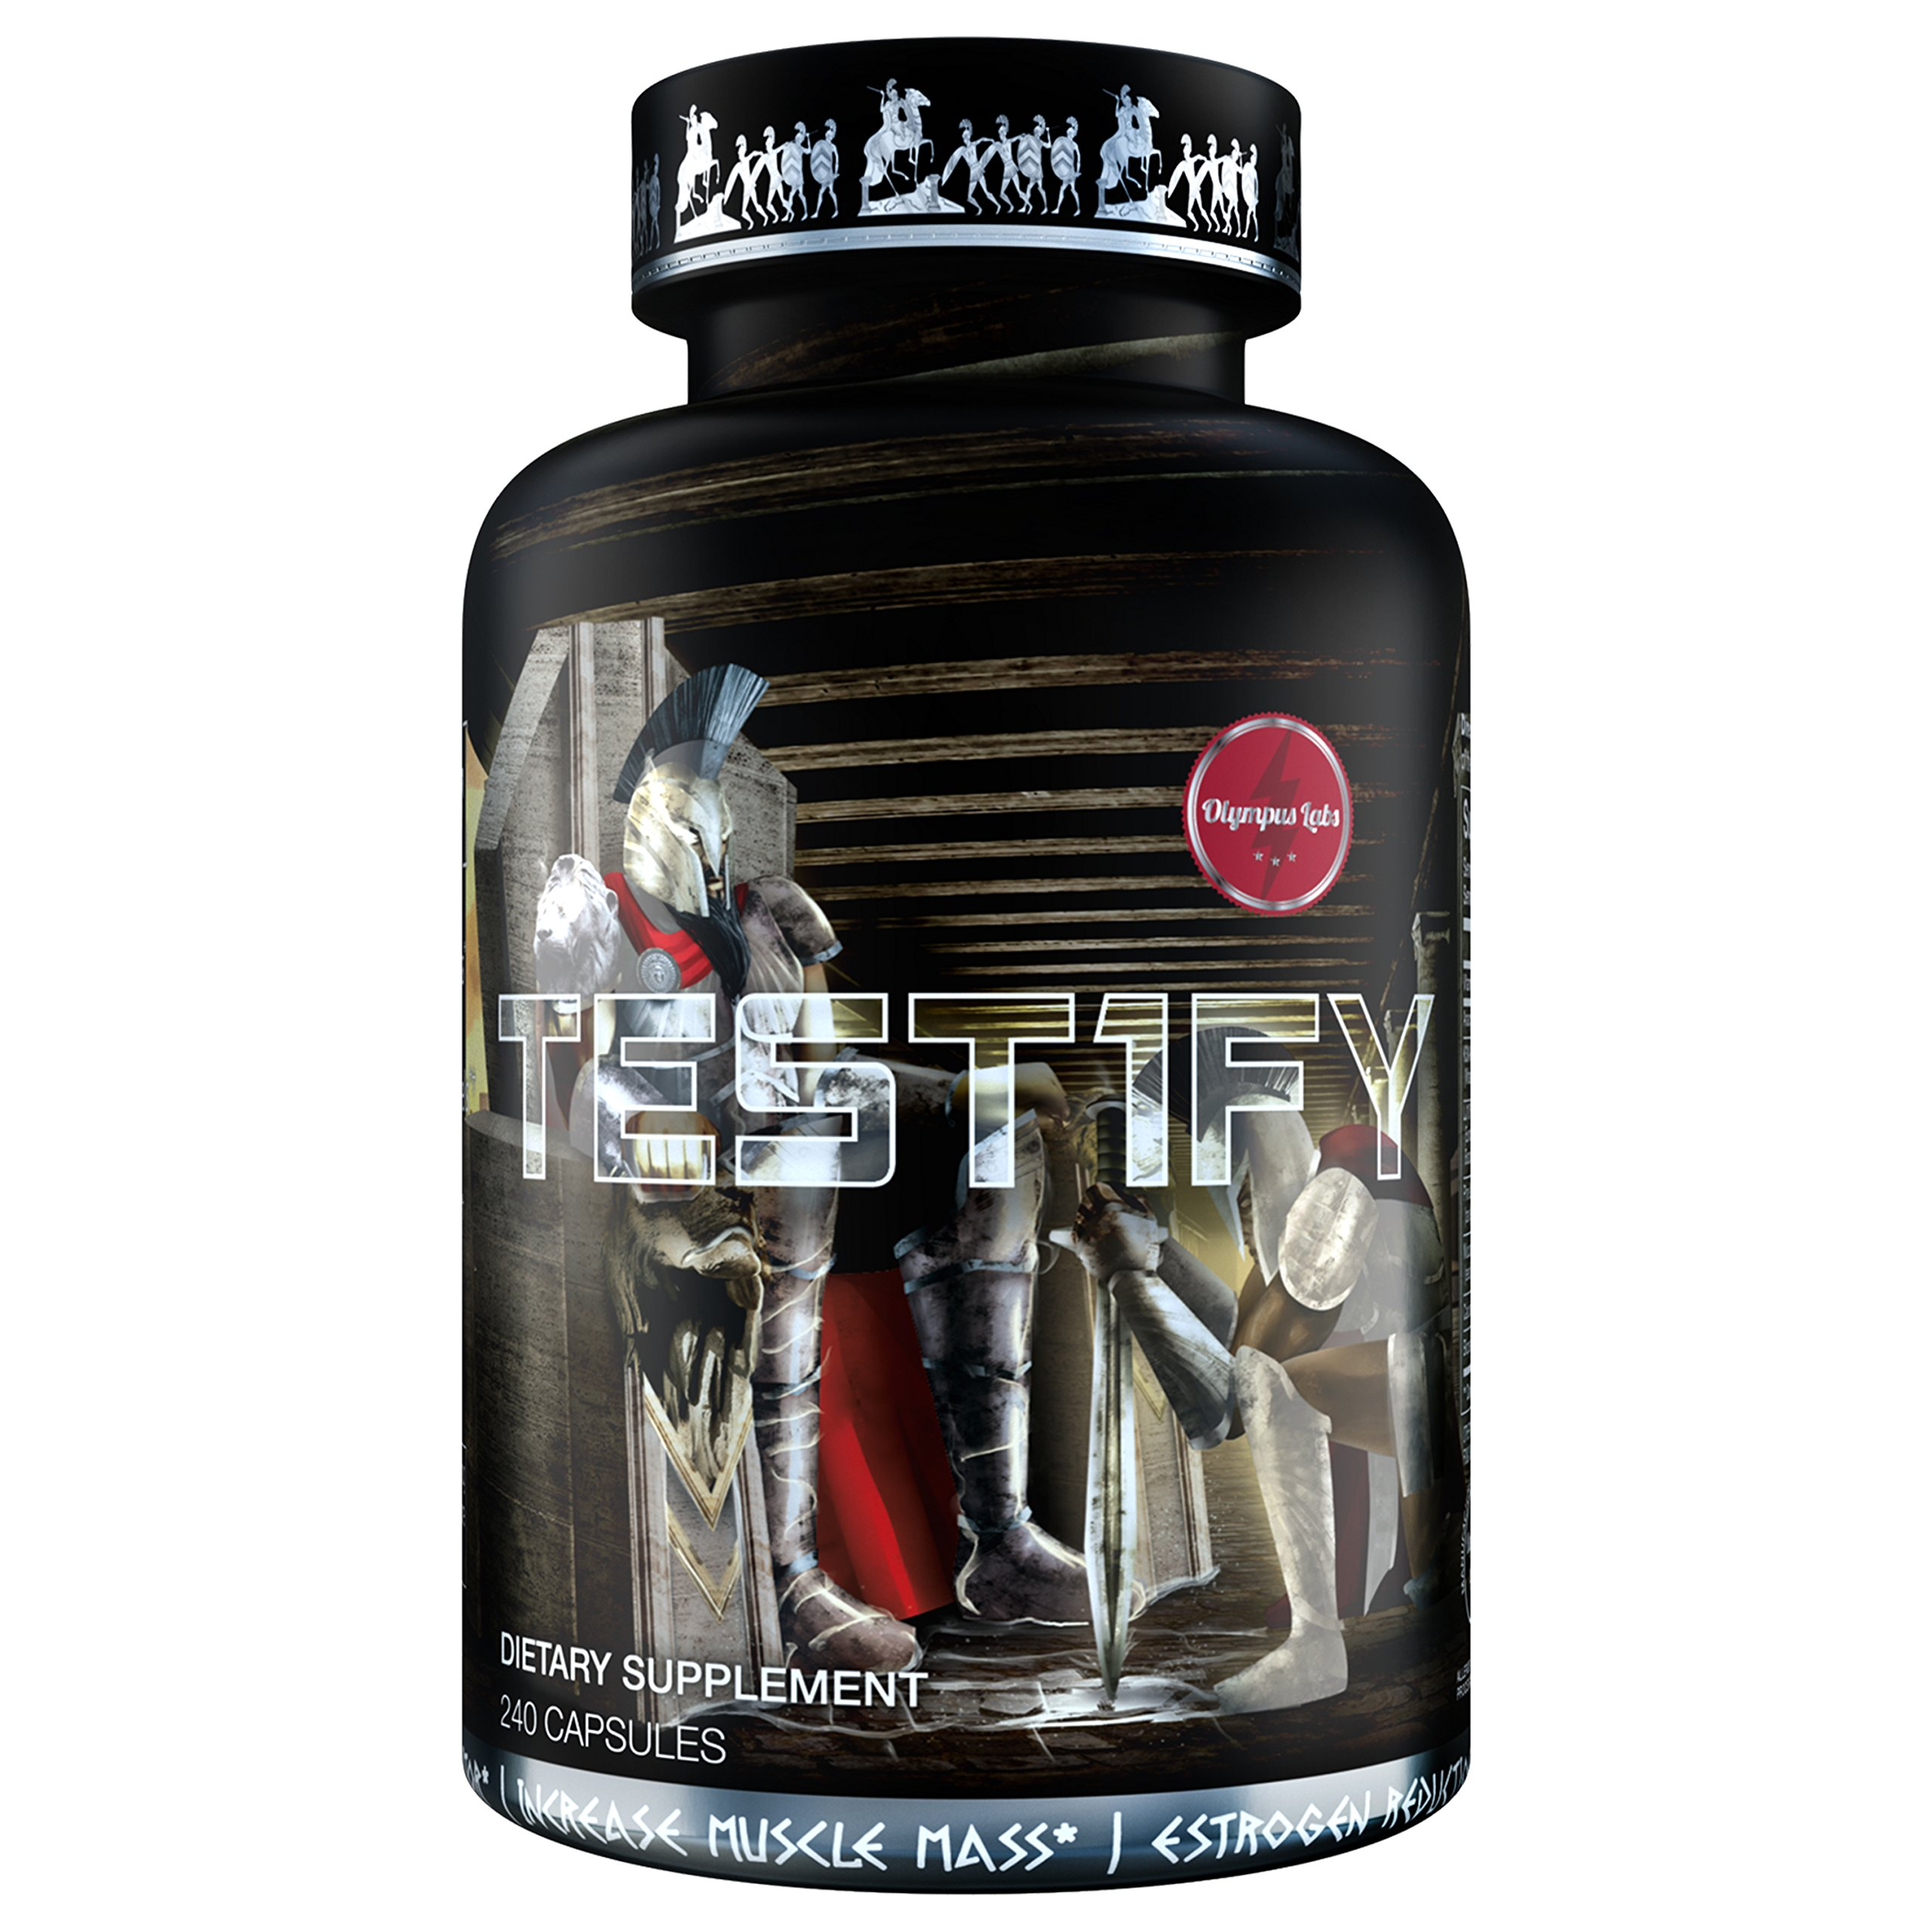 TEST1FY Testosterone Boosting and Muscle Building Supplement - Includes Key Patented Ingredients Including LJ100, Albion Boroganic Glycine, and KSM-66 Ashwagandha - 240 capsules - 30 Servings